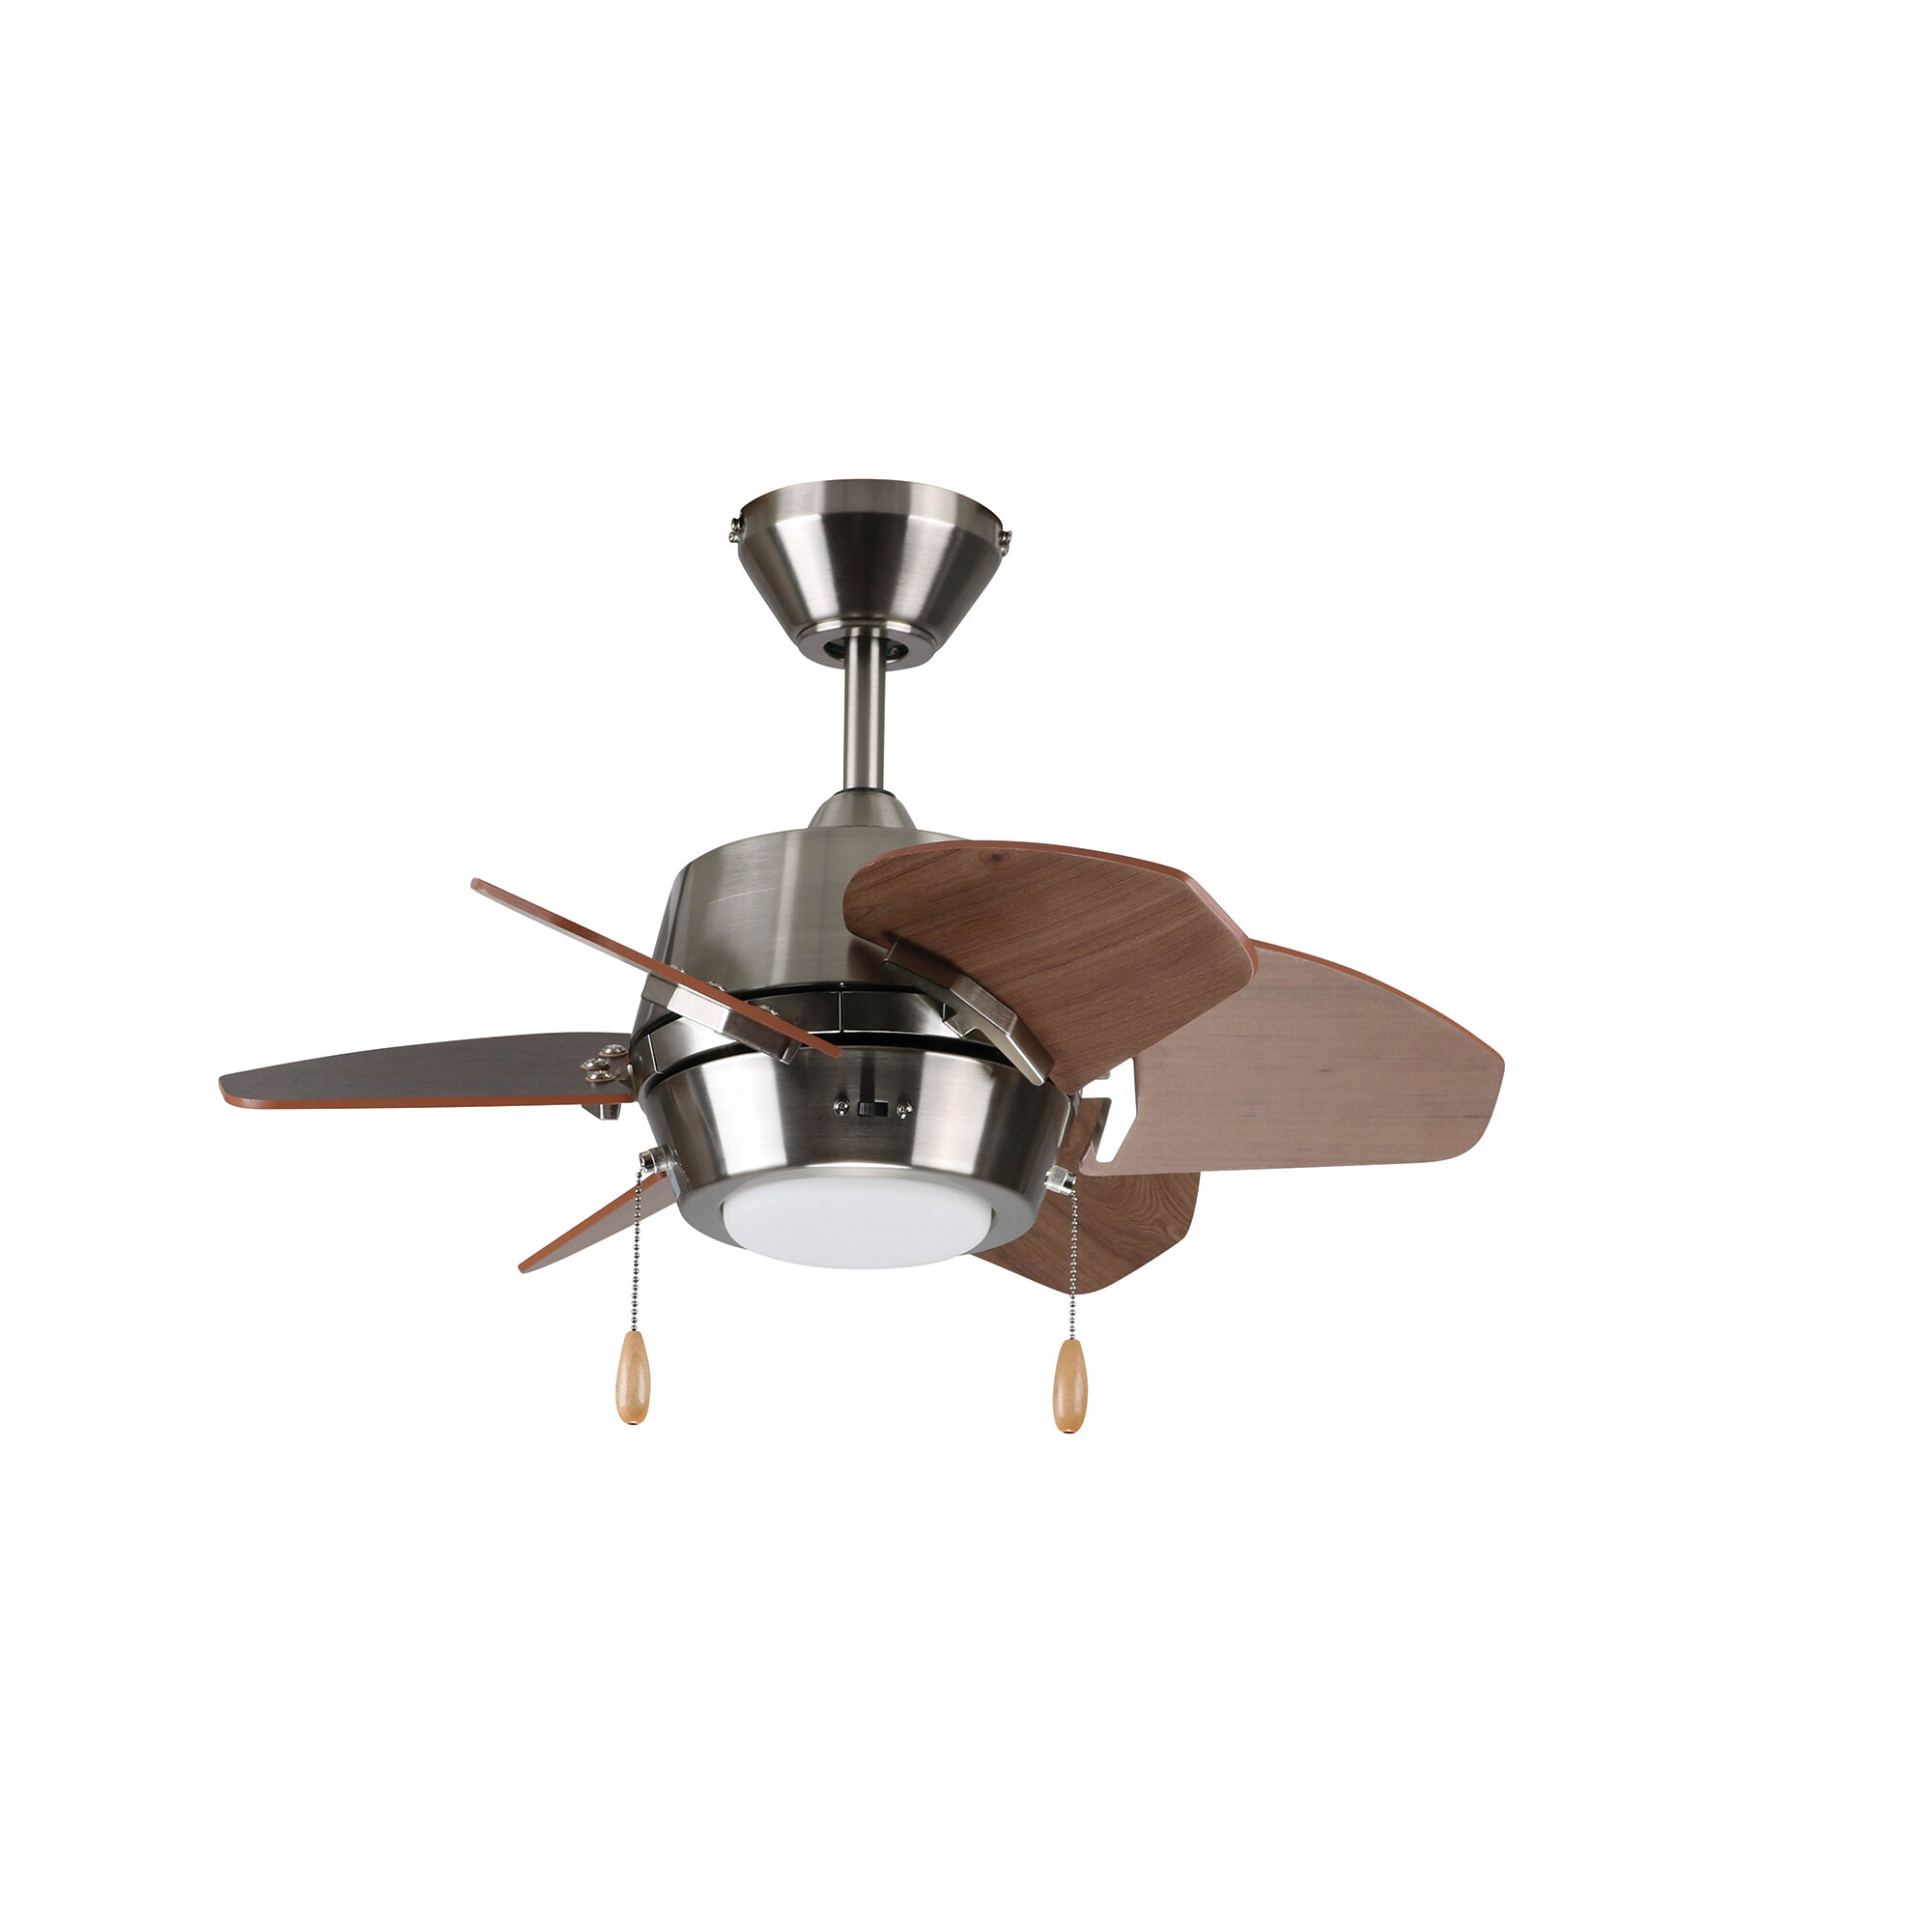 17 Stories 24 Lujan 6 Blade Led Propeller Ceiling Fan With Light Kit Included Reviews Wayfair